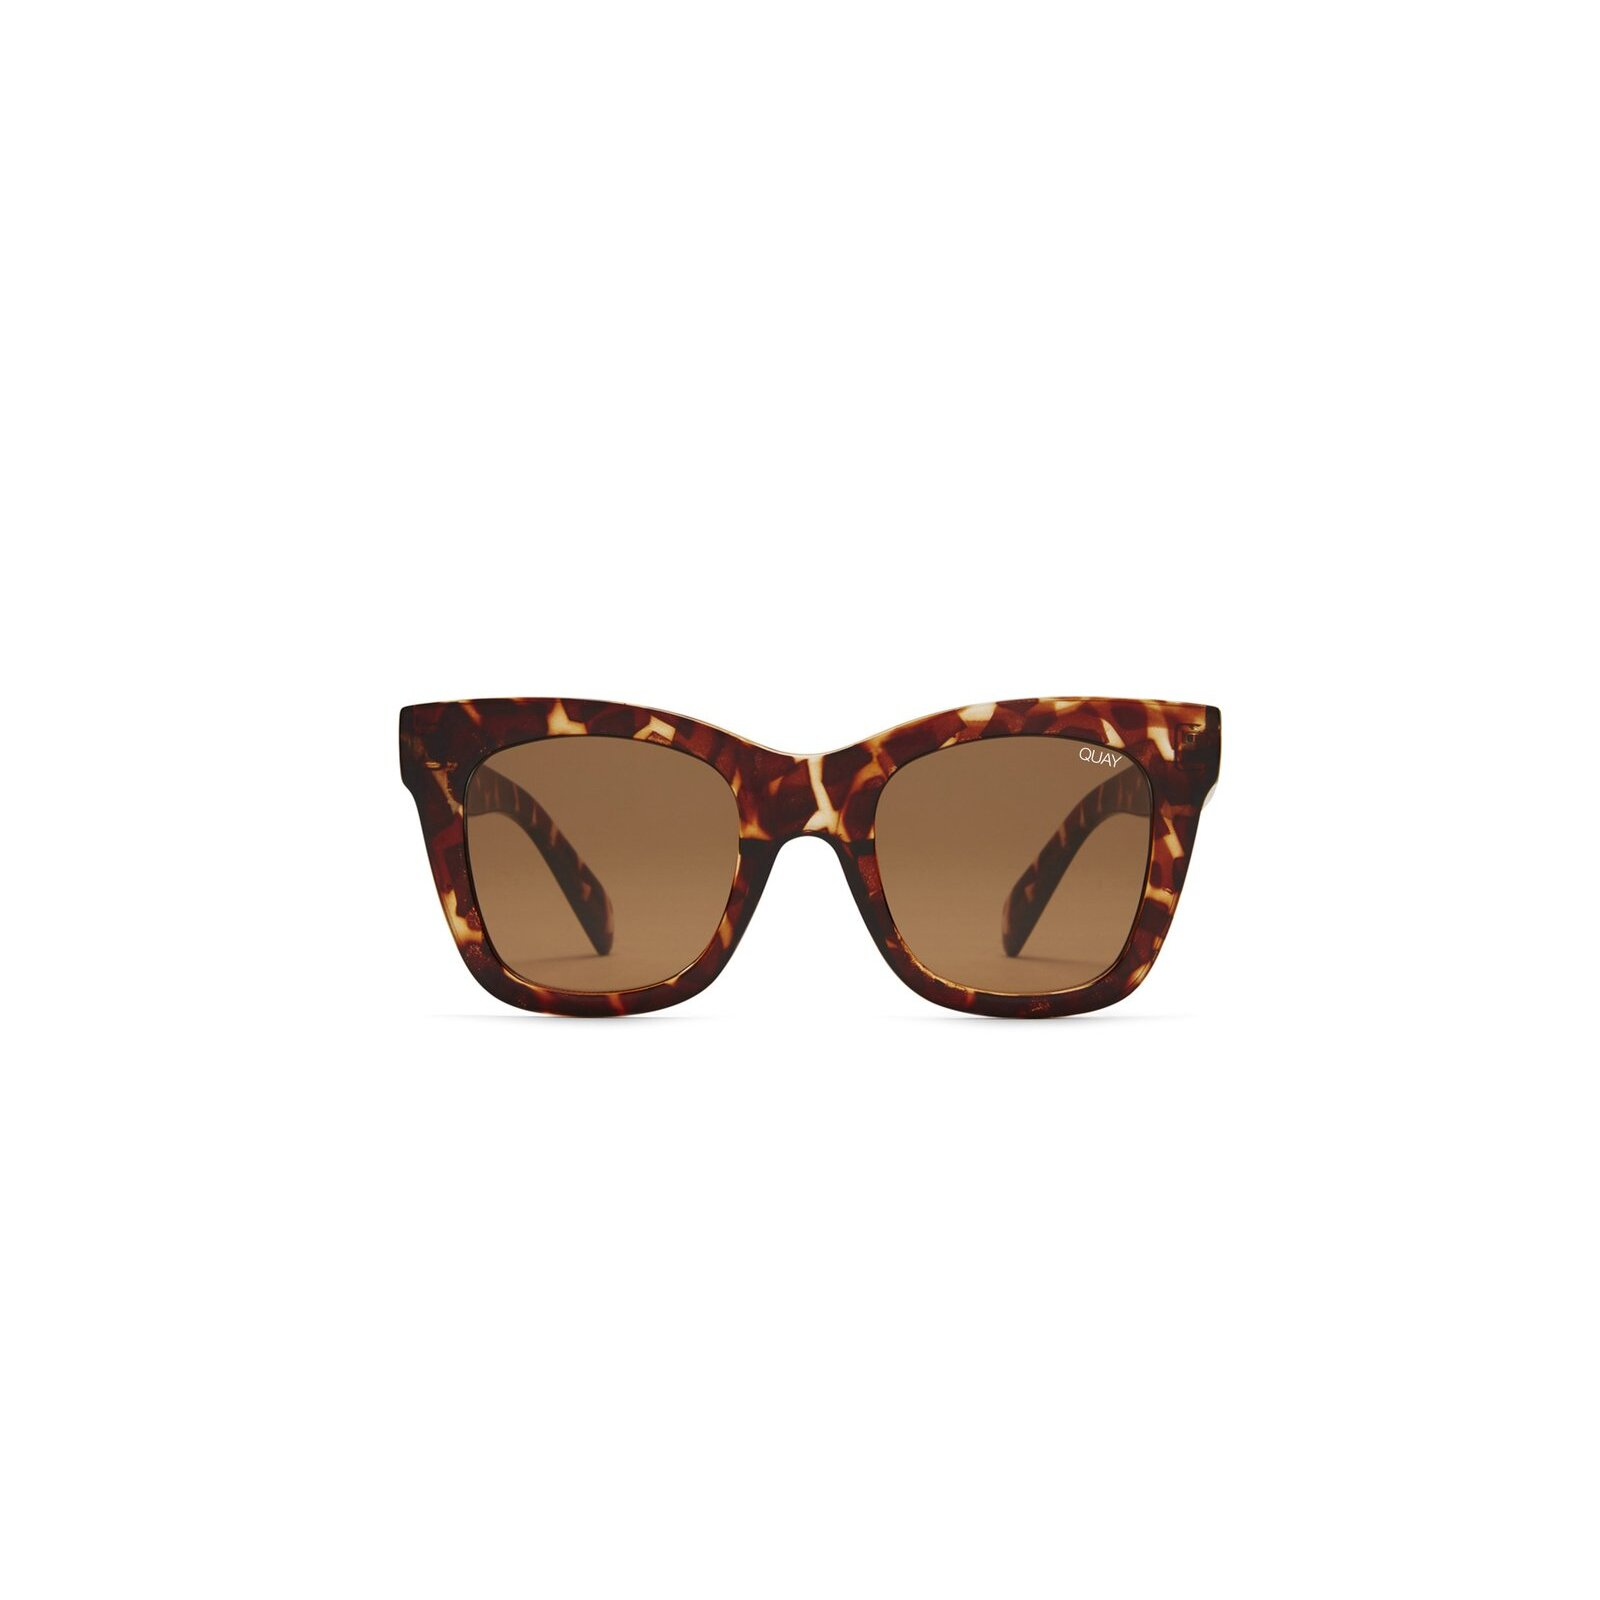 QUAY AFTER HOURS SUNGLASSES TORTOISE/BROWN LENS